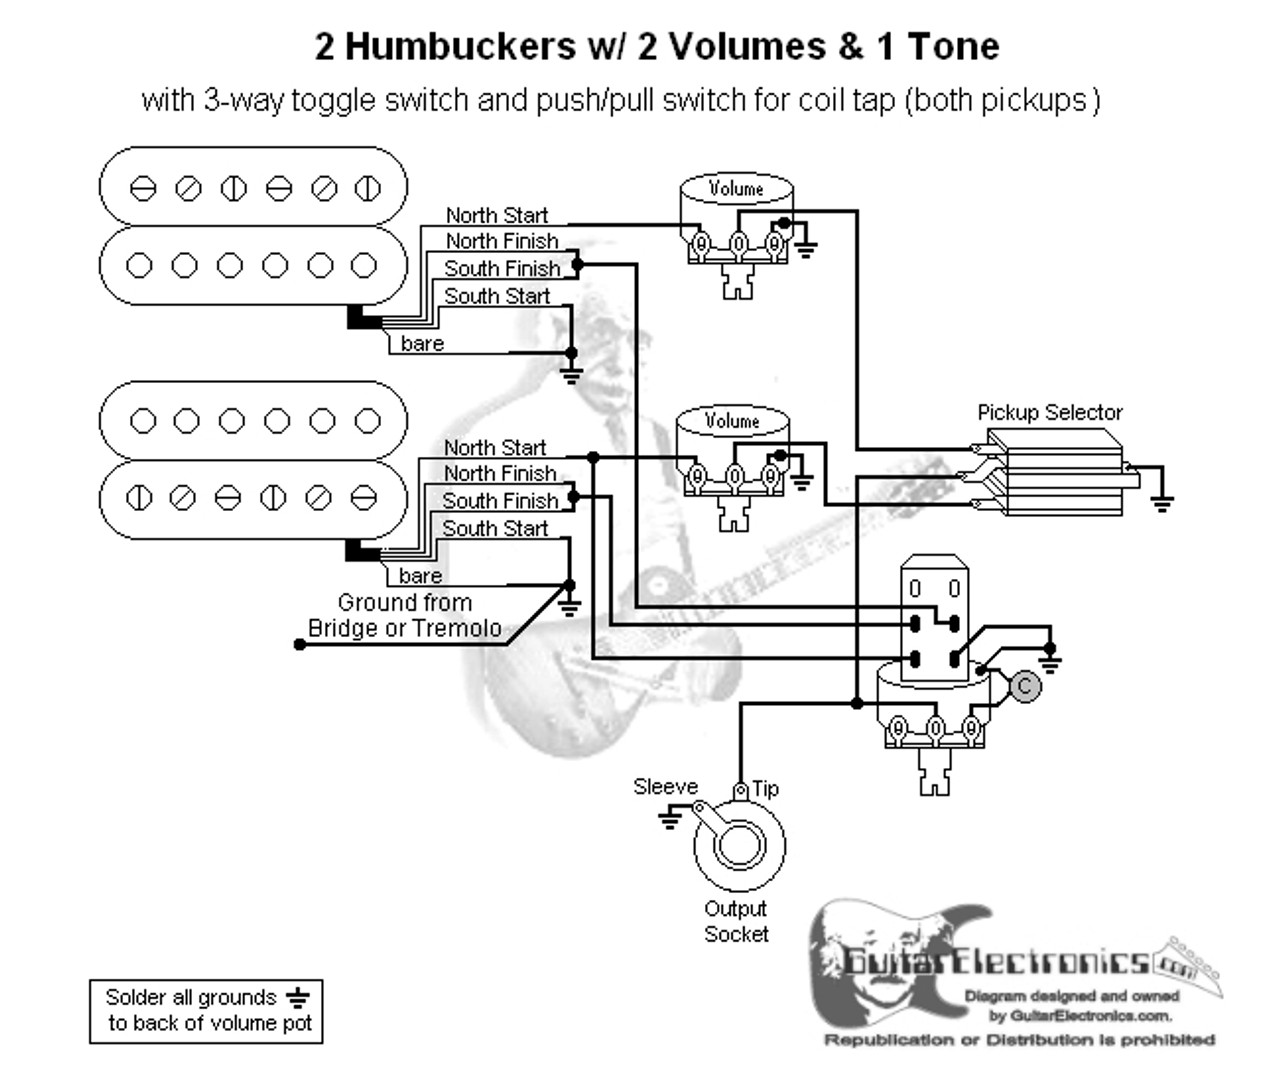 2 humbuckers 3 way toggle switch 2 volumes 1 tone coil tap